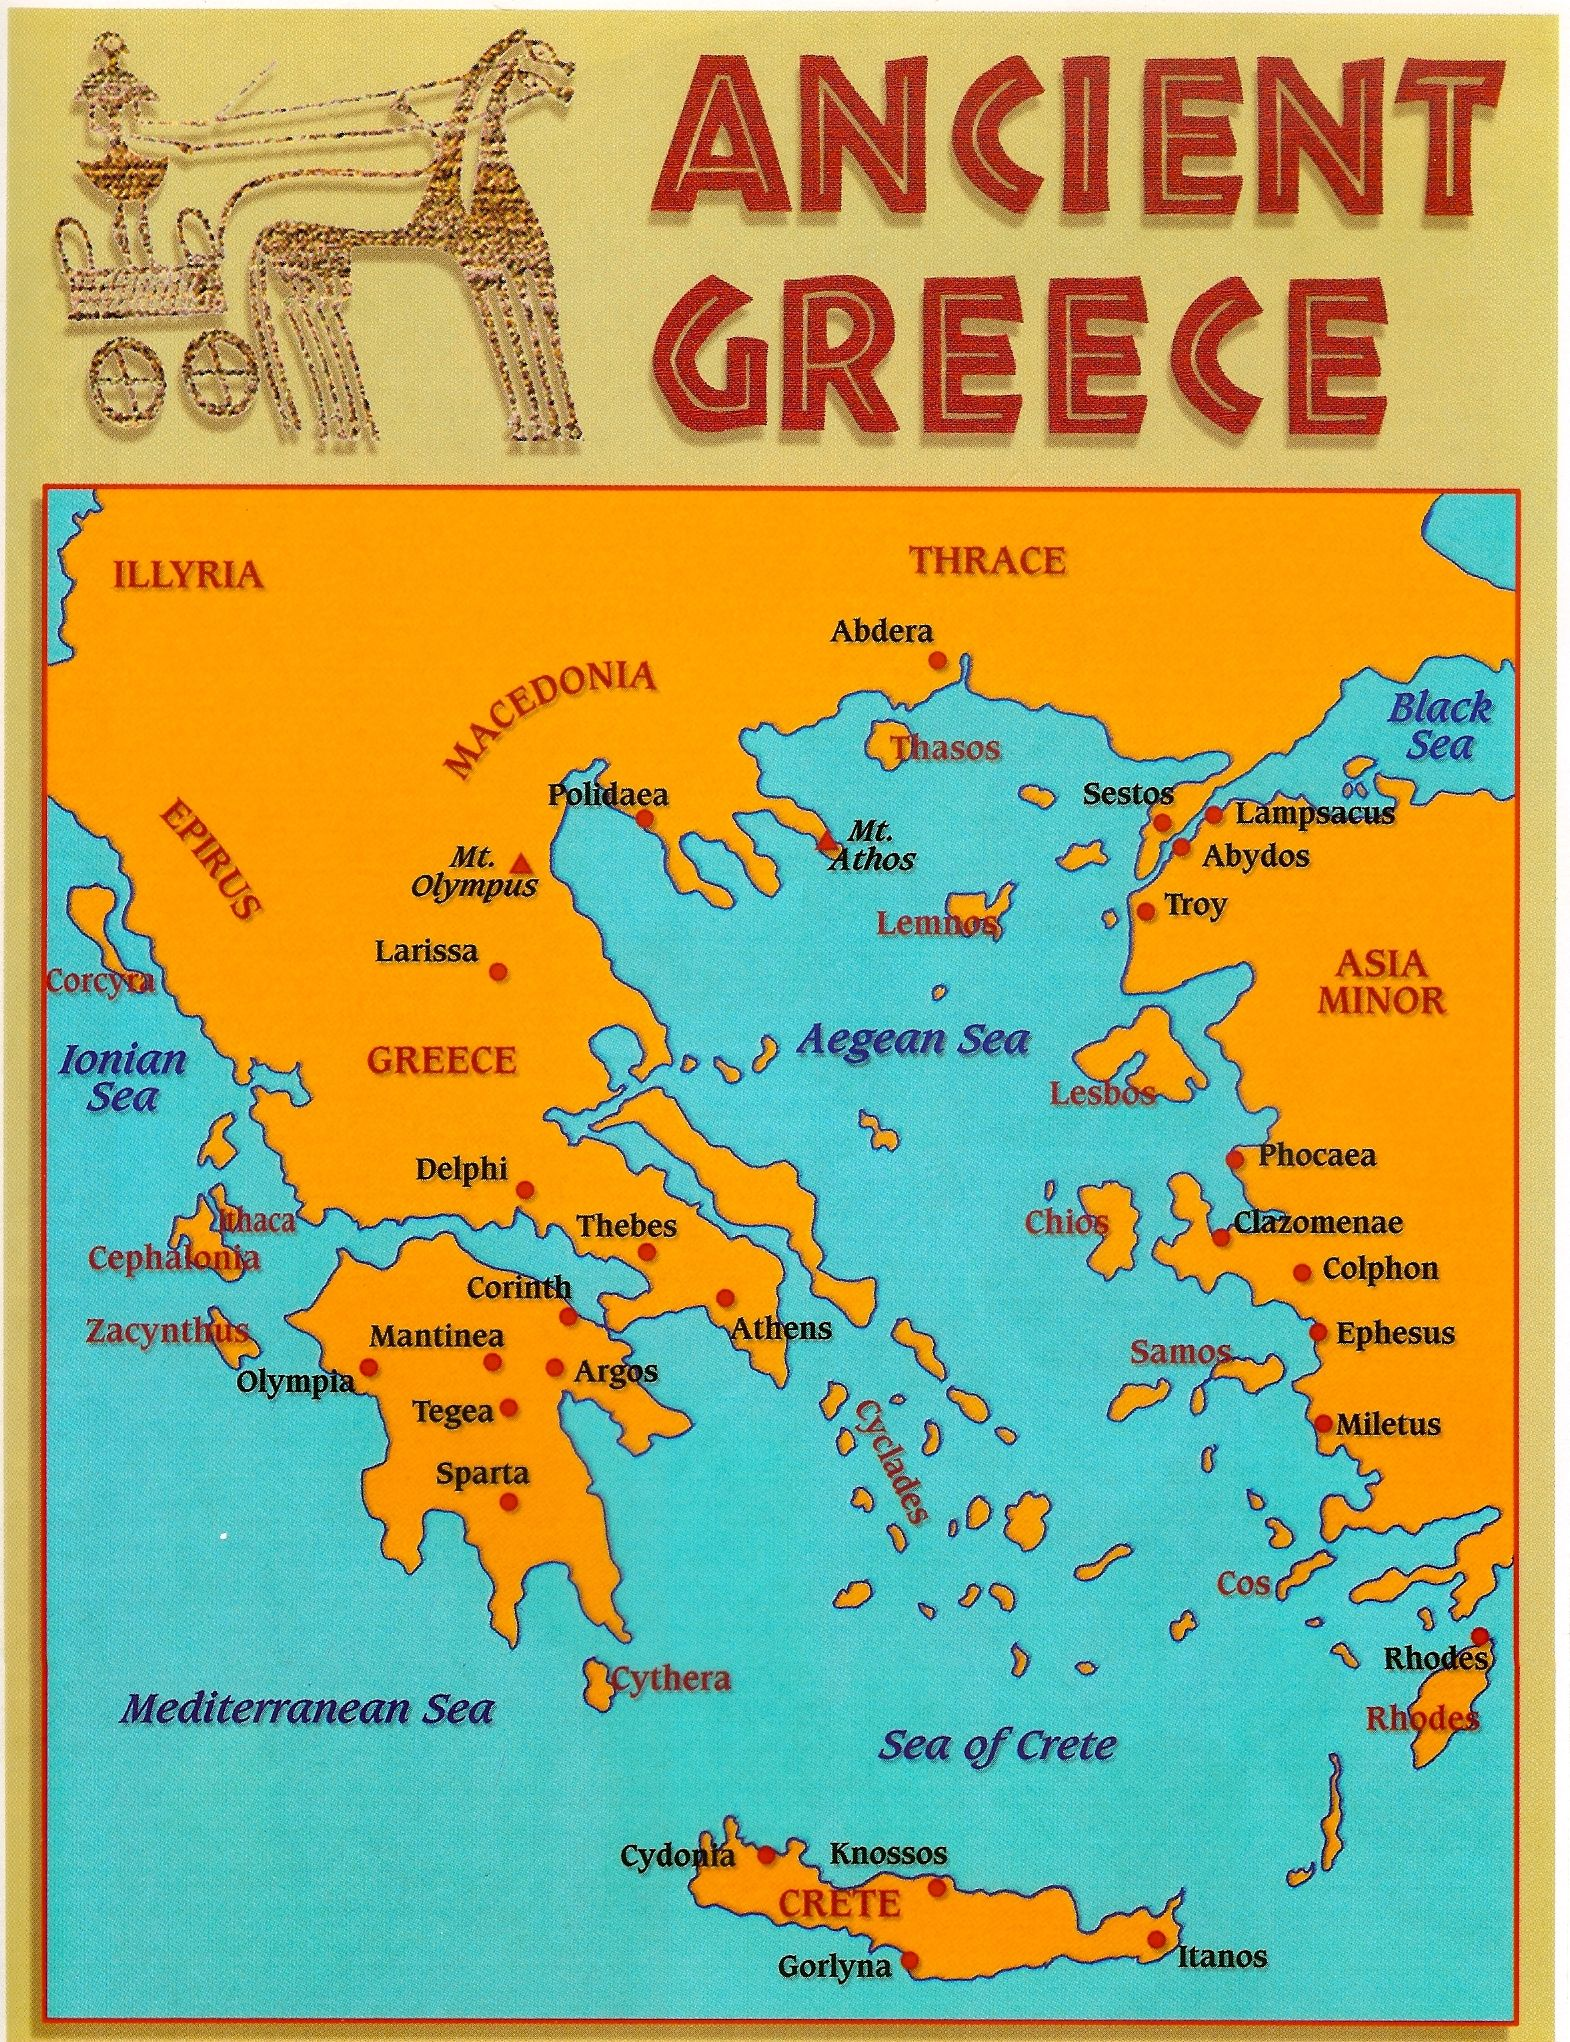 a history of ancient greek olympics The ancient greek olympics in 776 bce, about three thousand years ago, the first olympic games took place originally, the games were part of a religious festival.